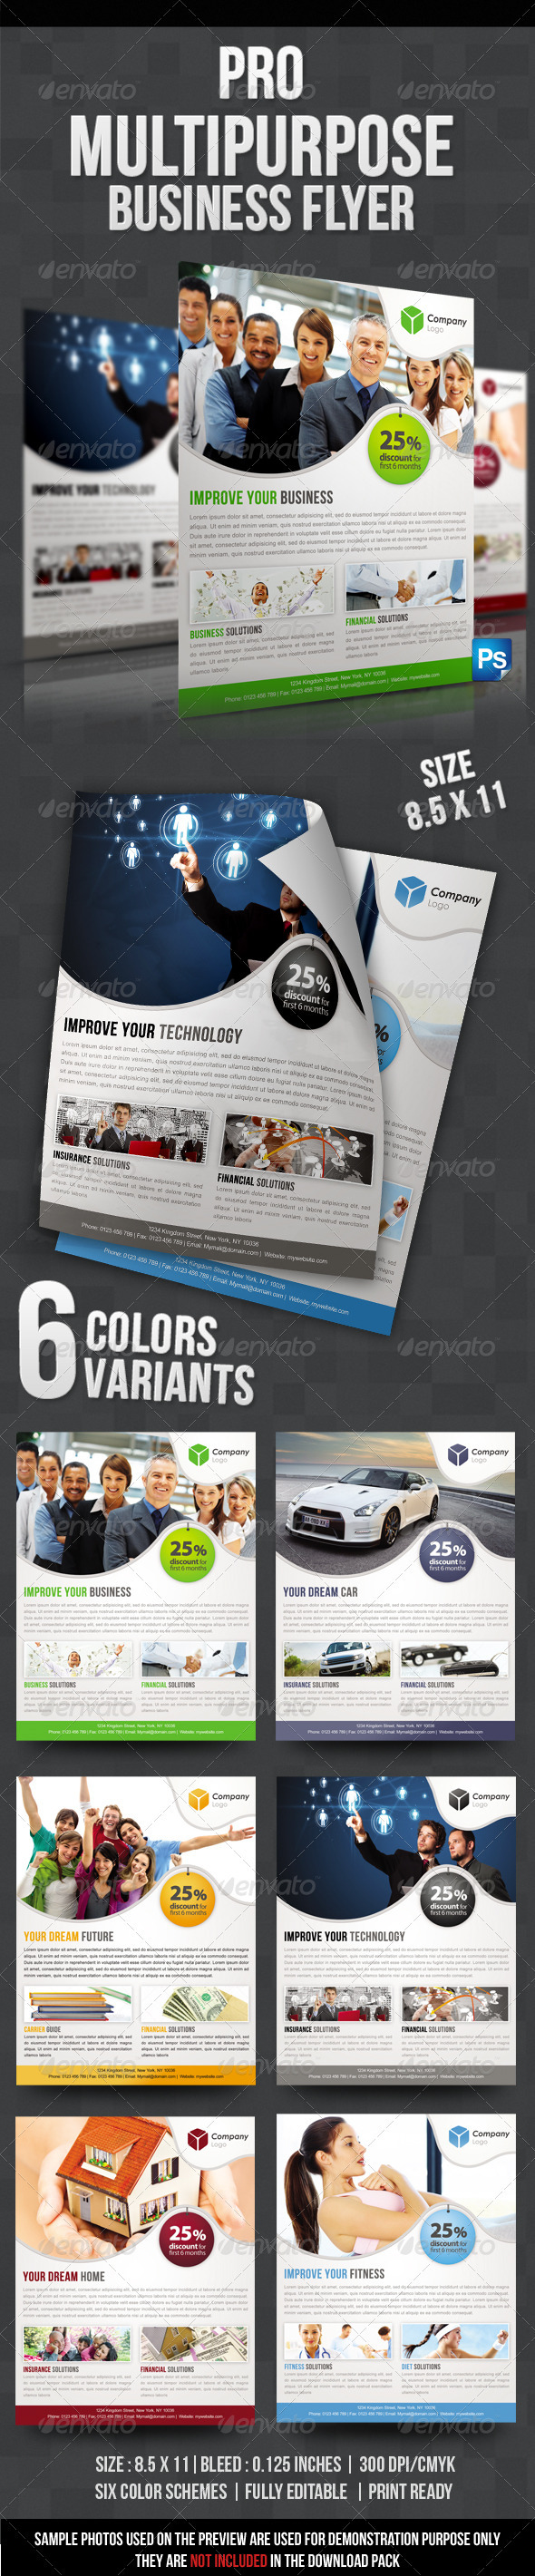 GraphicRiver Pro Multipurpose Business Flyer 3316928